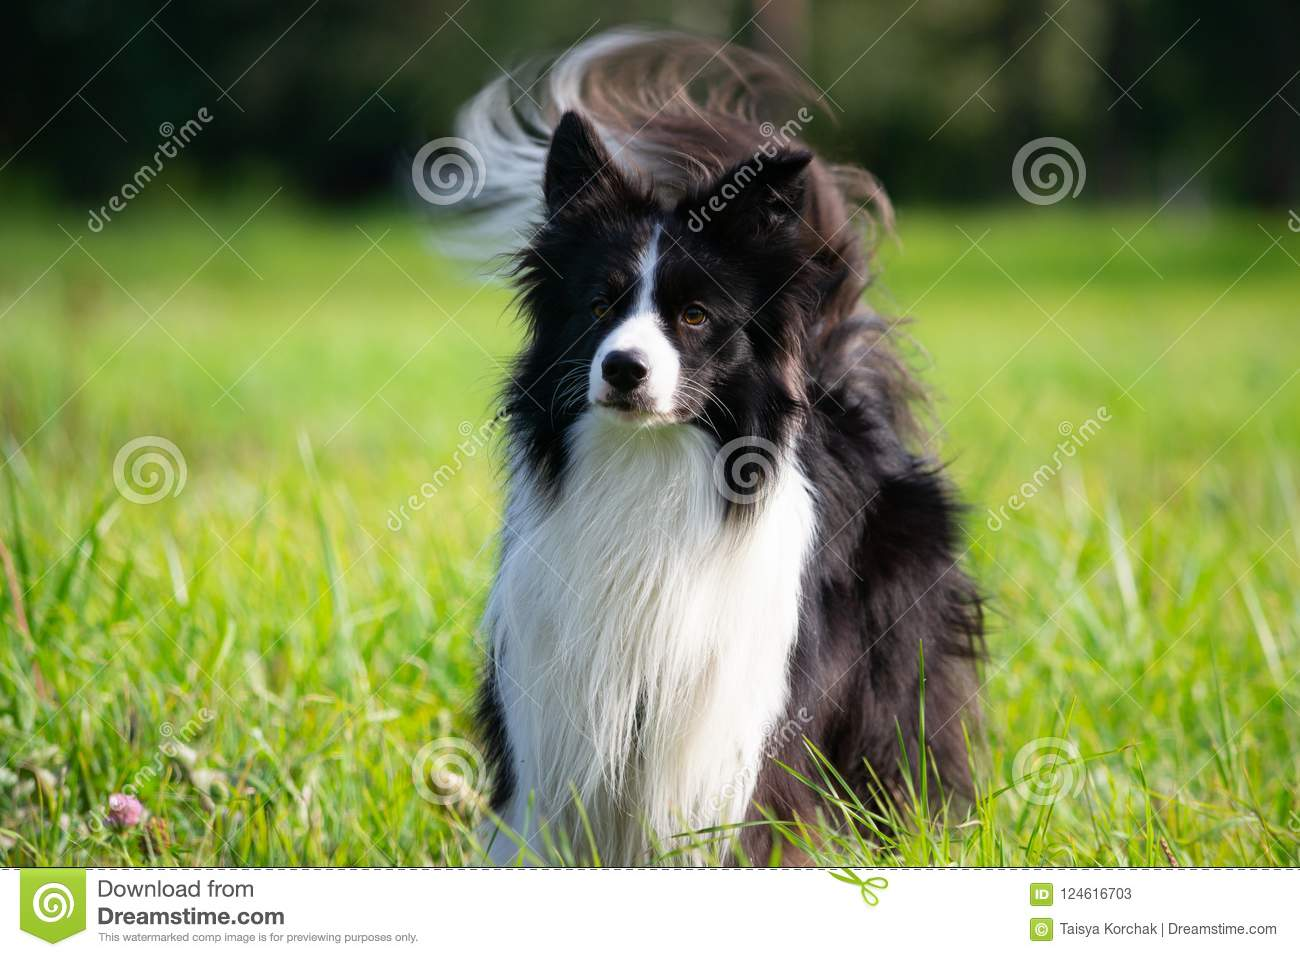 Young energetic dog on a walk. Border Collie.